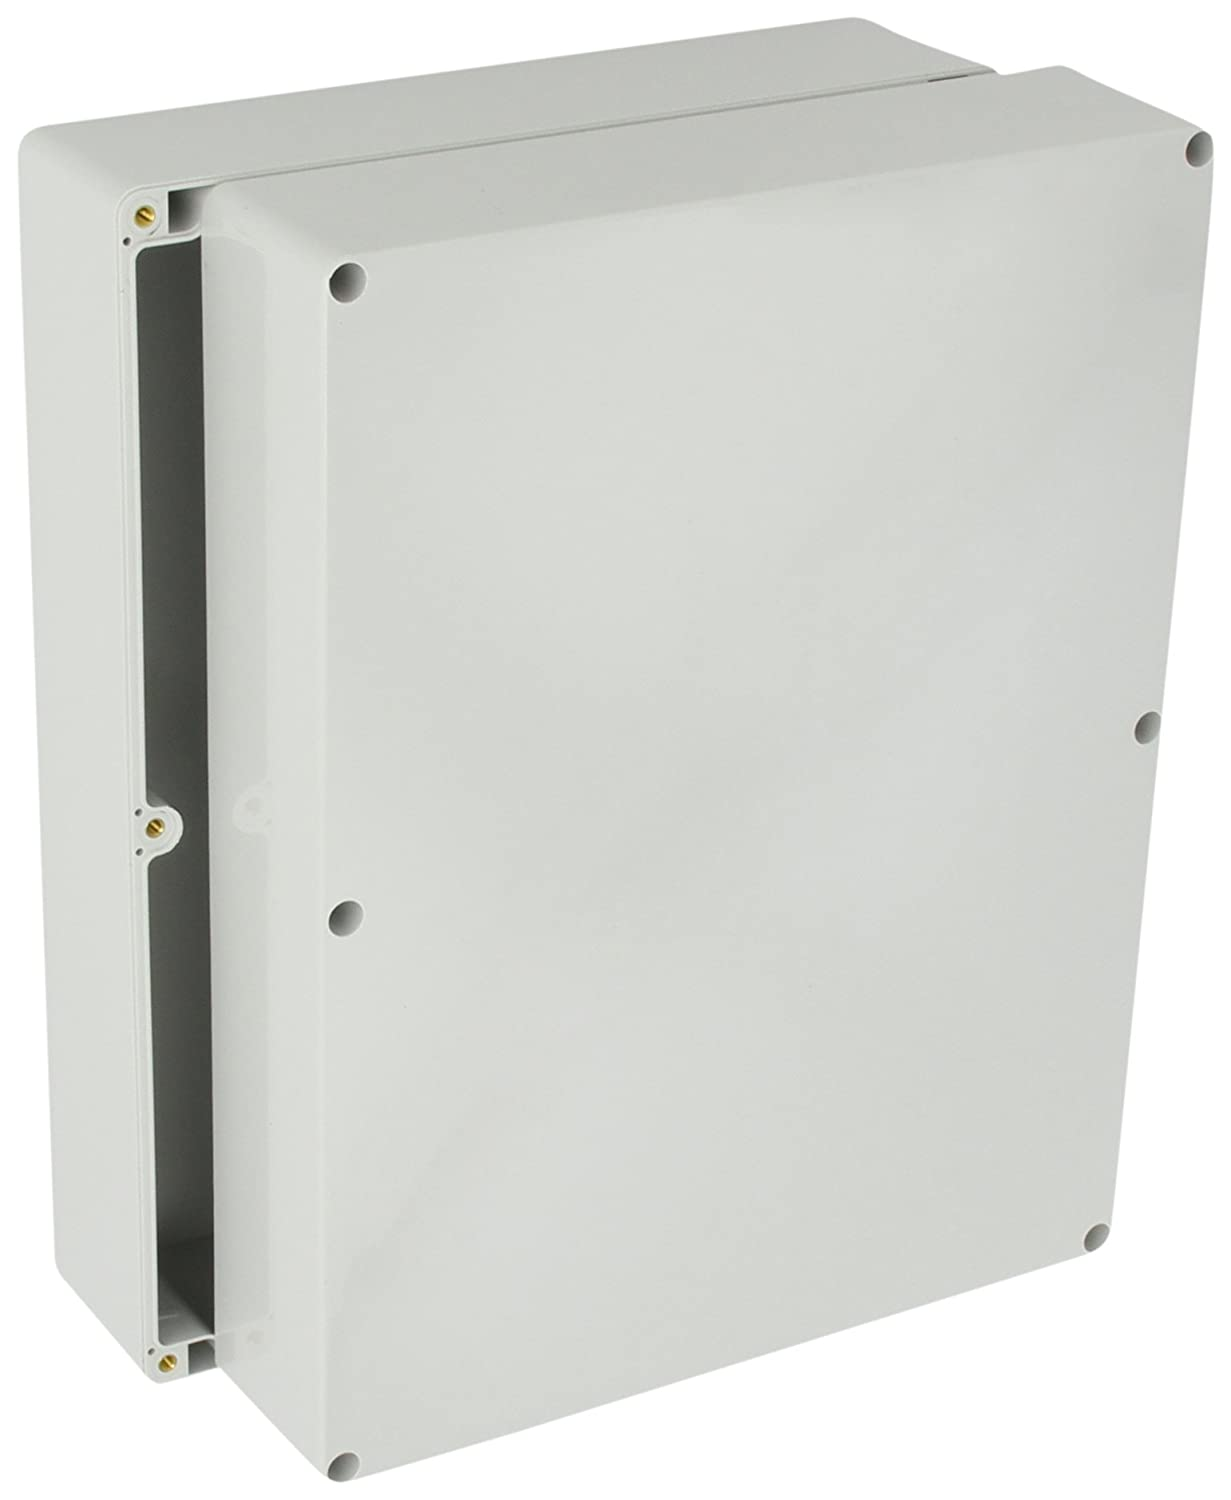 BUD Industries NBA-10176 Style A Plastic Indoor Box with Clear Door Light Gray Finish 23-39//64 Length x 15-3//4 Width x 9-3//64 Height 23-39//64 Length x 15-3//4 Width x 9-3//64 Height